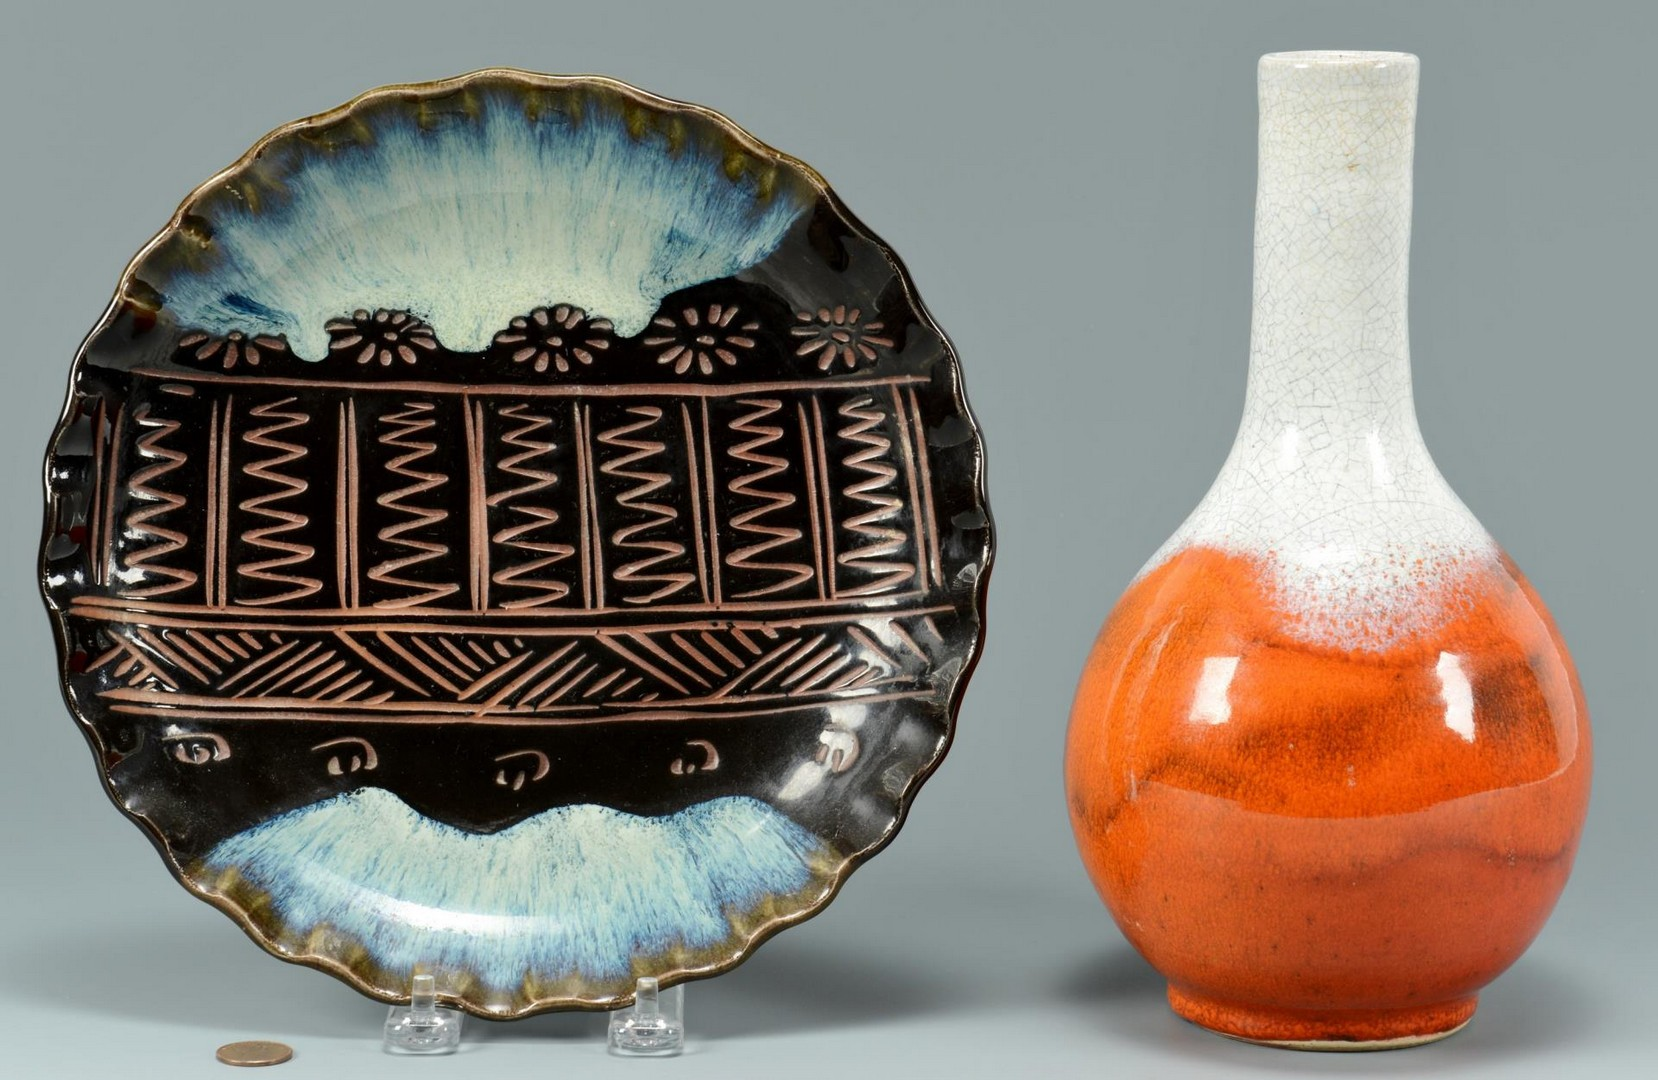 Lot 3383245: 2 Japanese Art Pottery Items